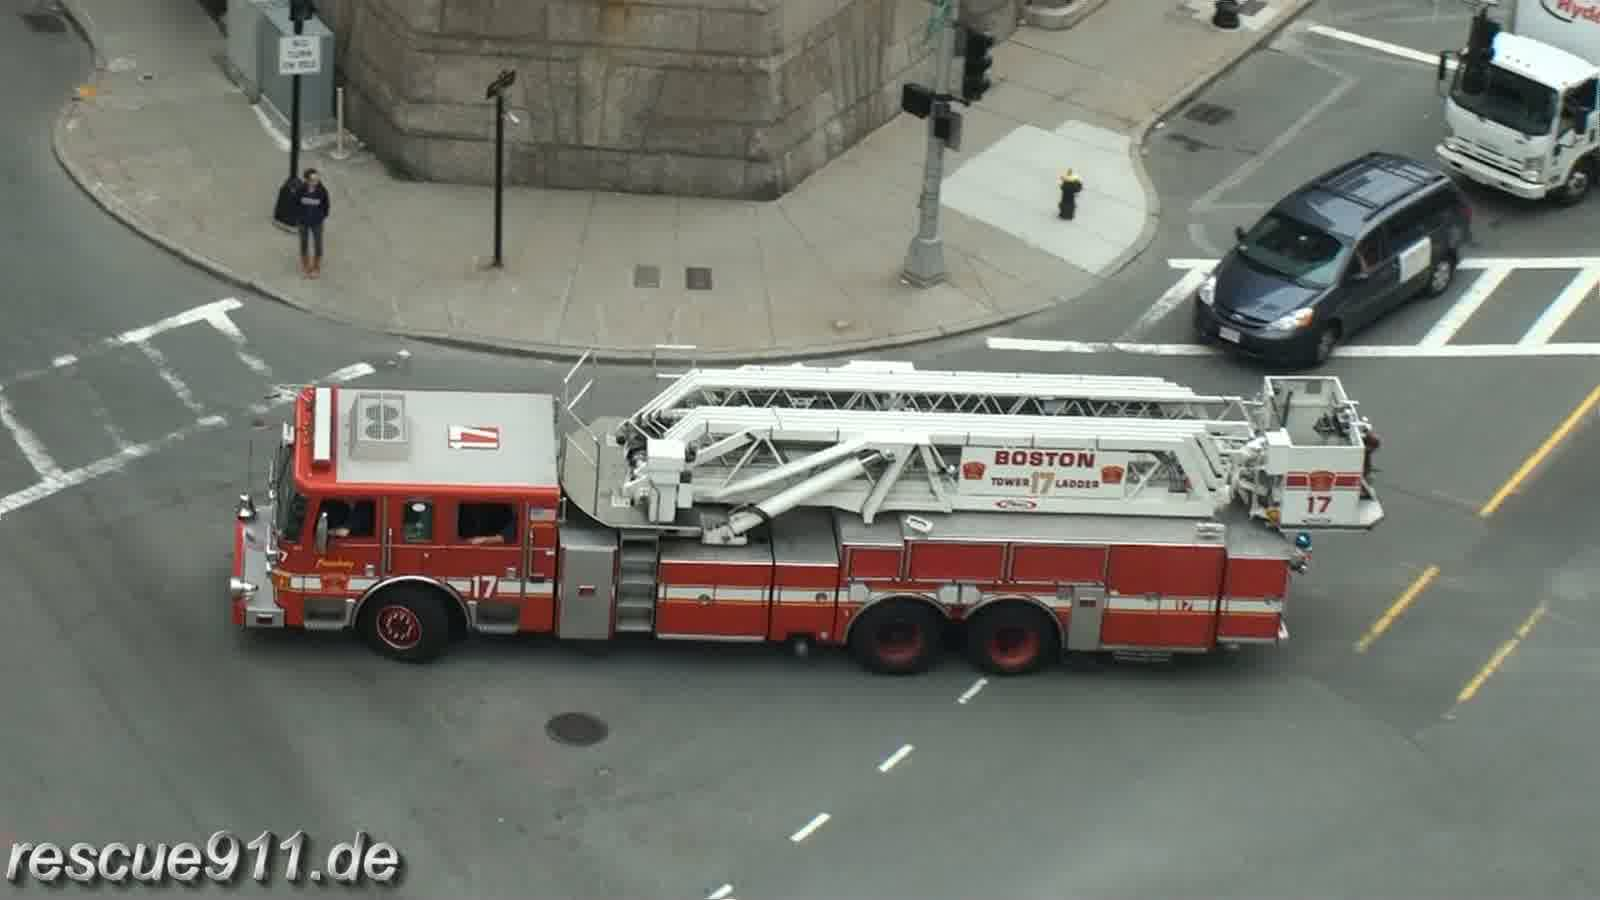 Tower ladder 17 Boston Fire Department + Ambulance A9 Boston EMS (stream)